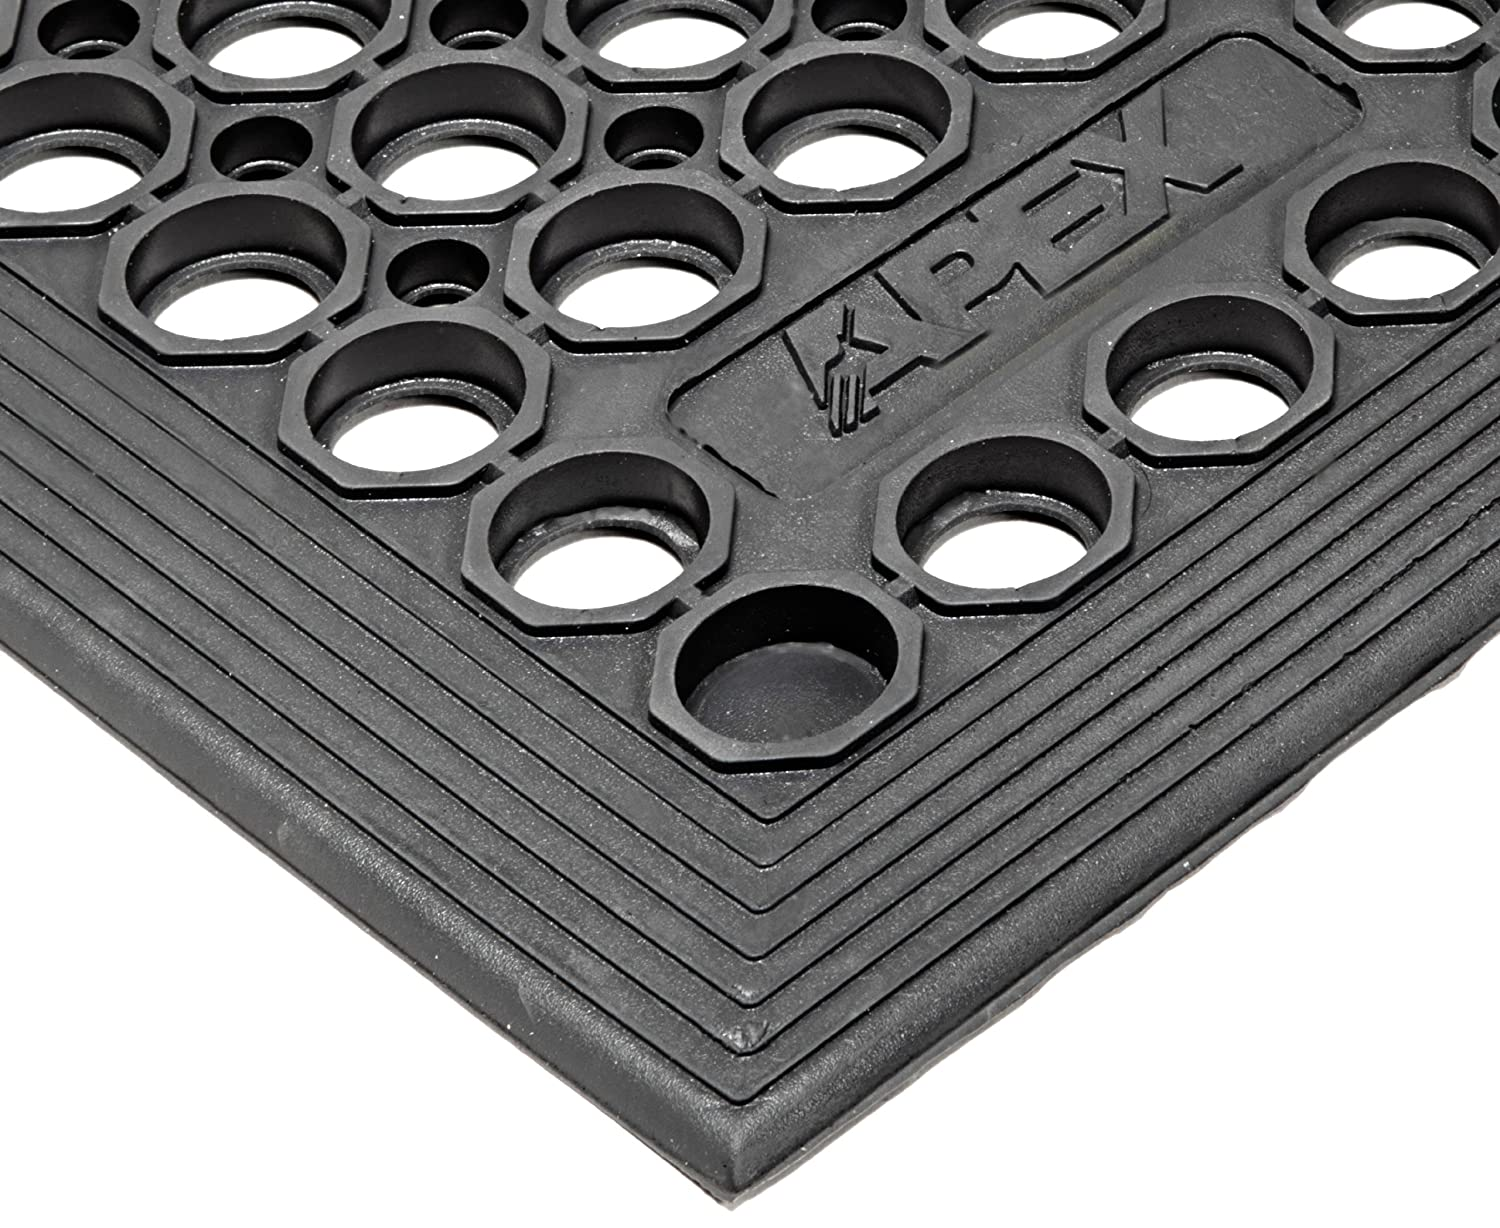 NoTrax T30 General Purpose Rubber Competitor Safety Anti Fatigue Mat for Wet Areas 3' Width x 5' Length x 1 2 Thickness Black